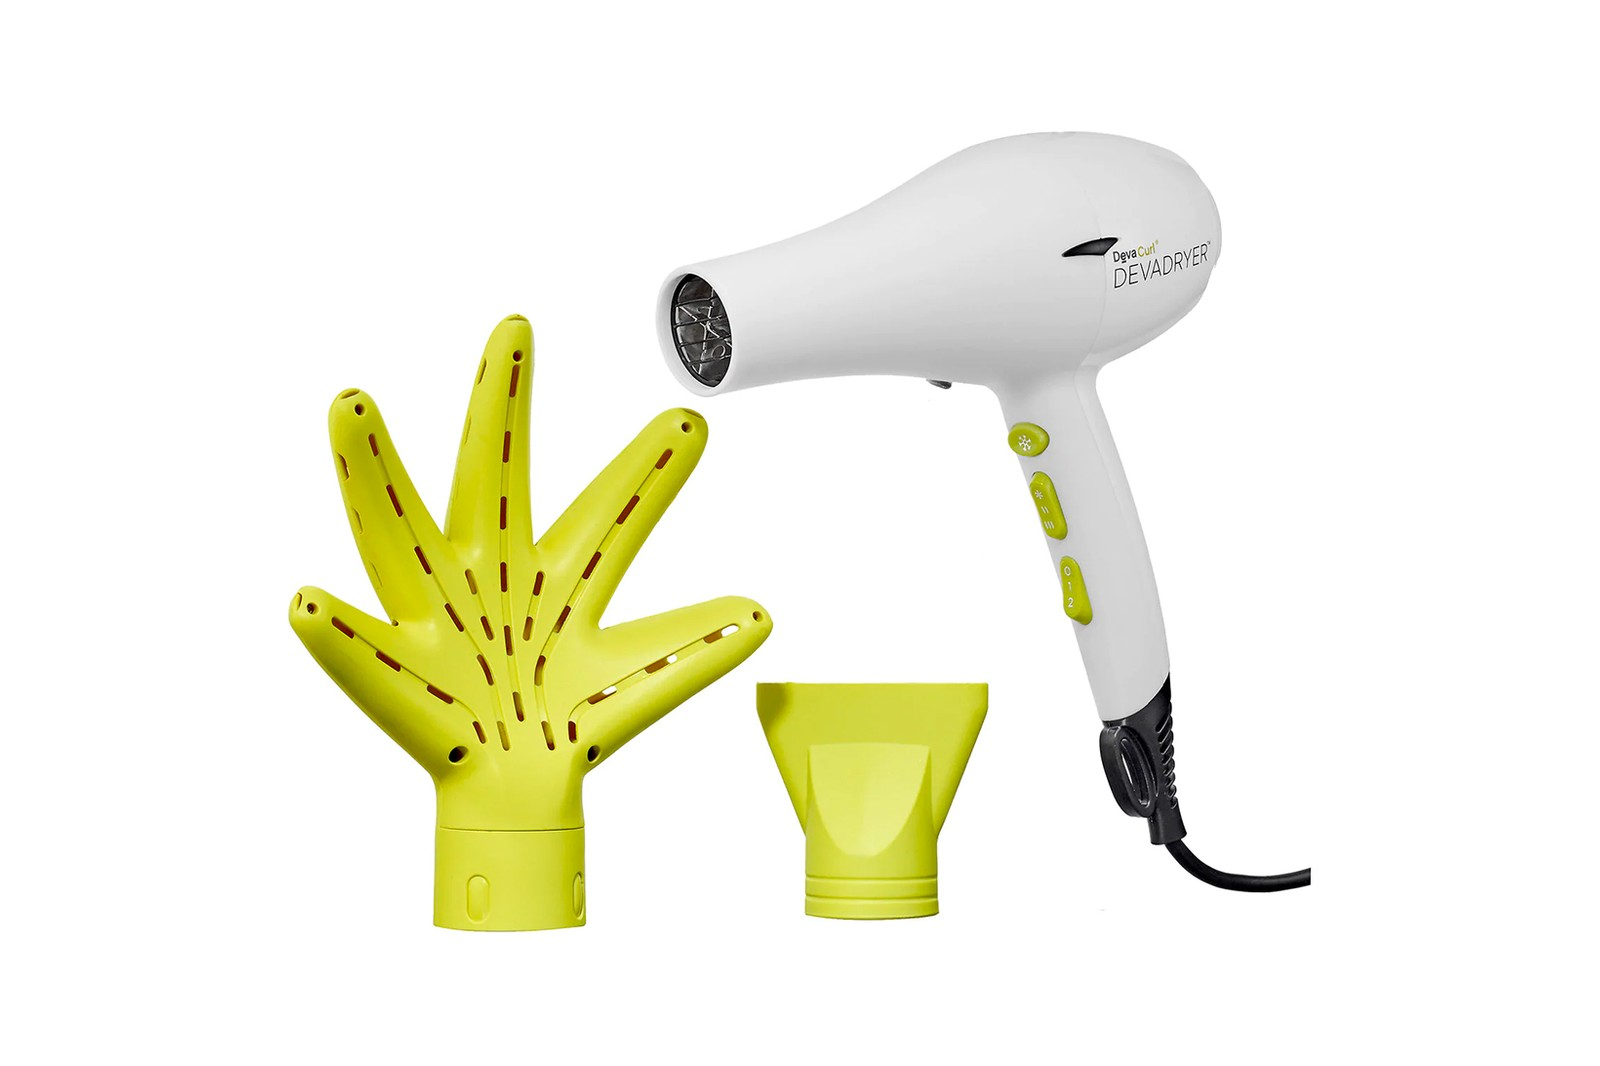 Dyson Supersonic Hair Blow Dryer Hairstyling Haircare